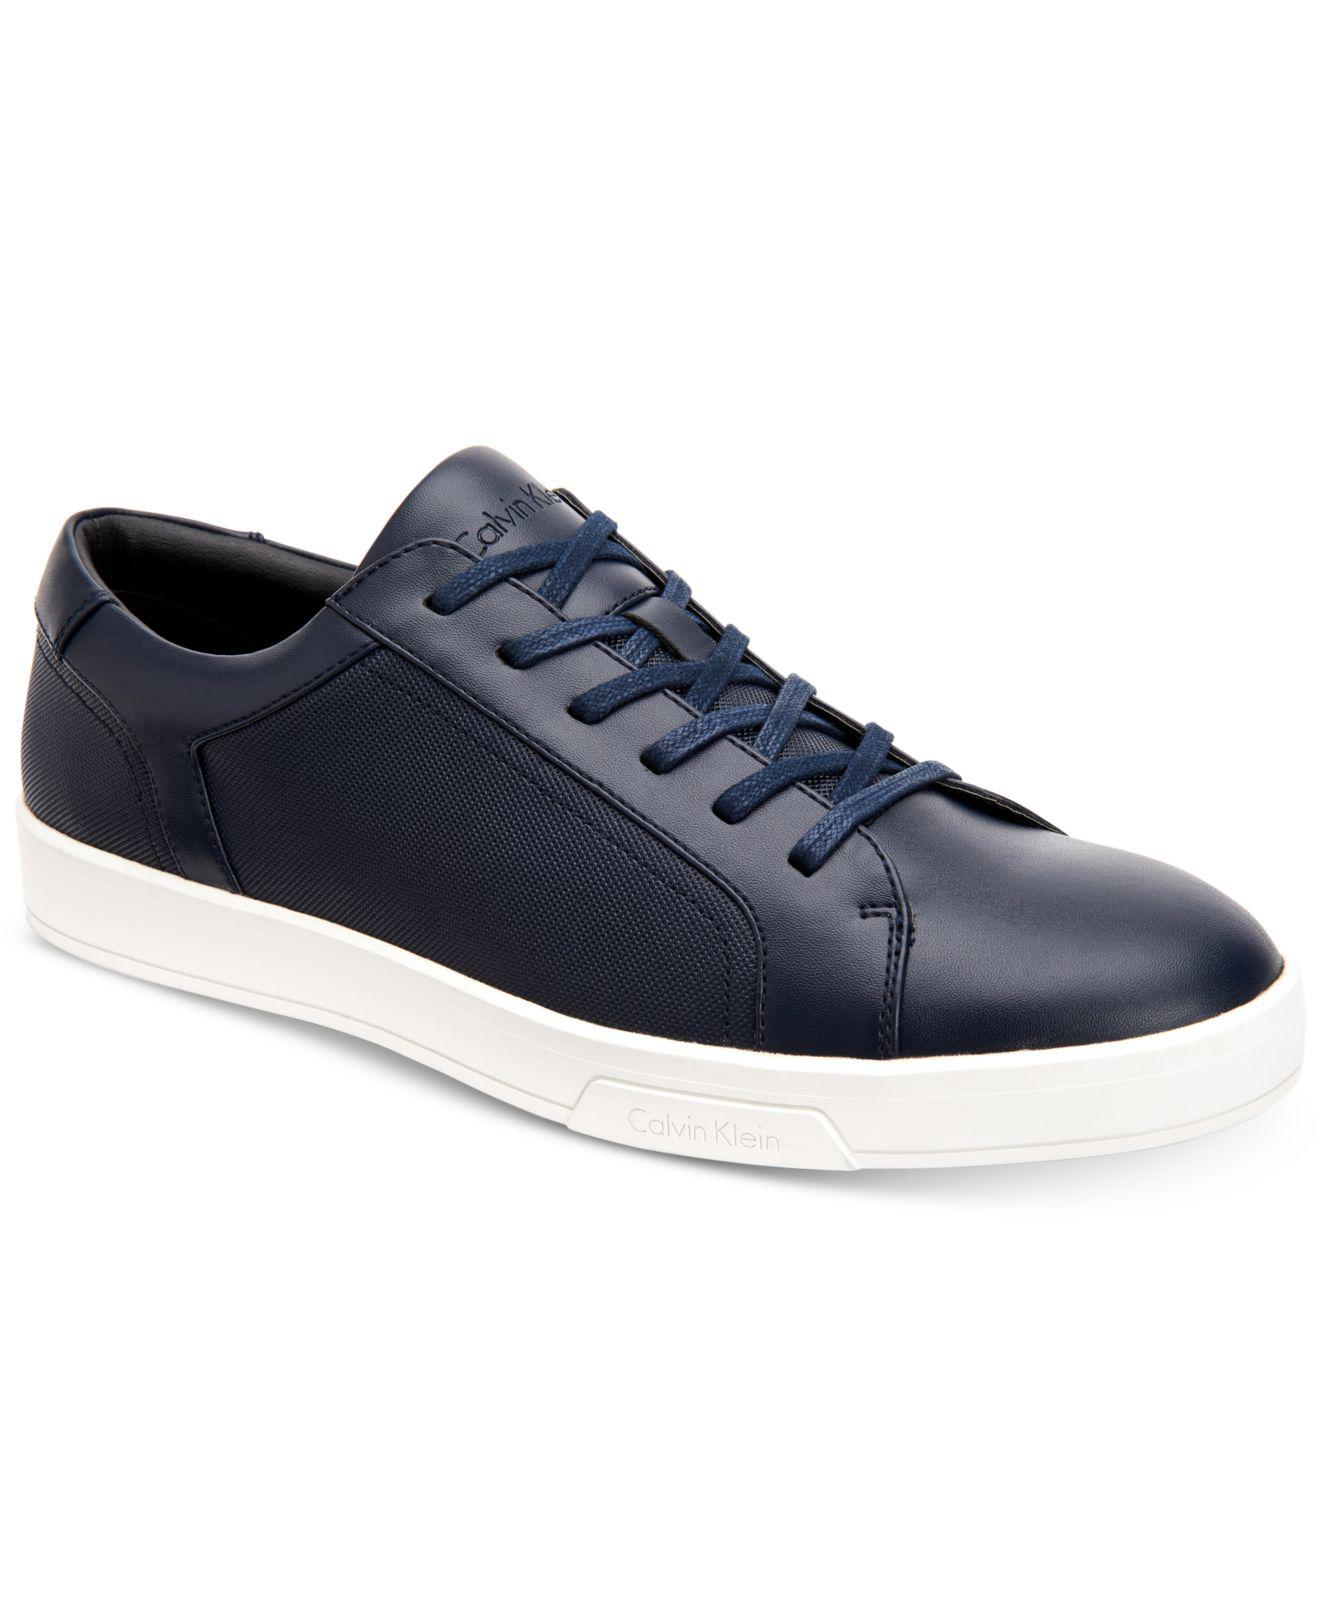 flat sole sneakers - Blue CALVIN KLEIN 205W39NYC